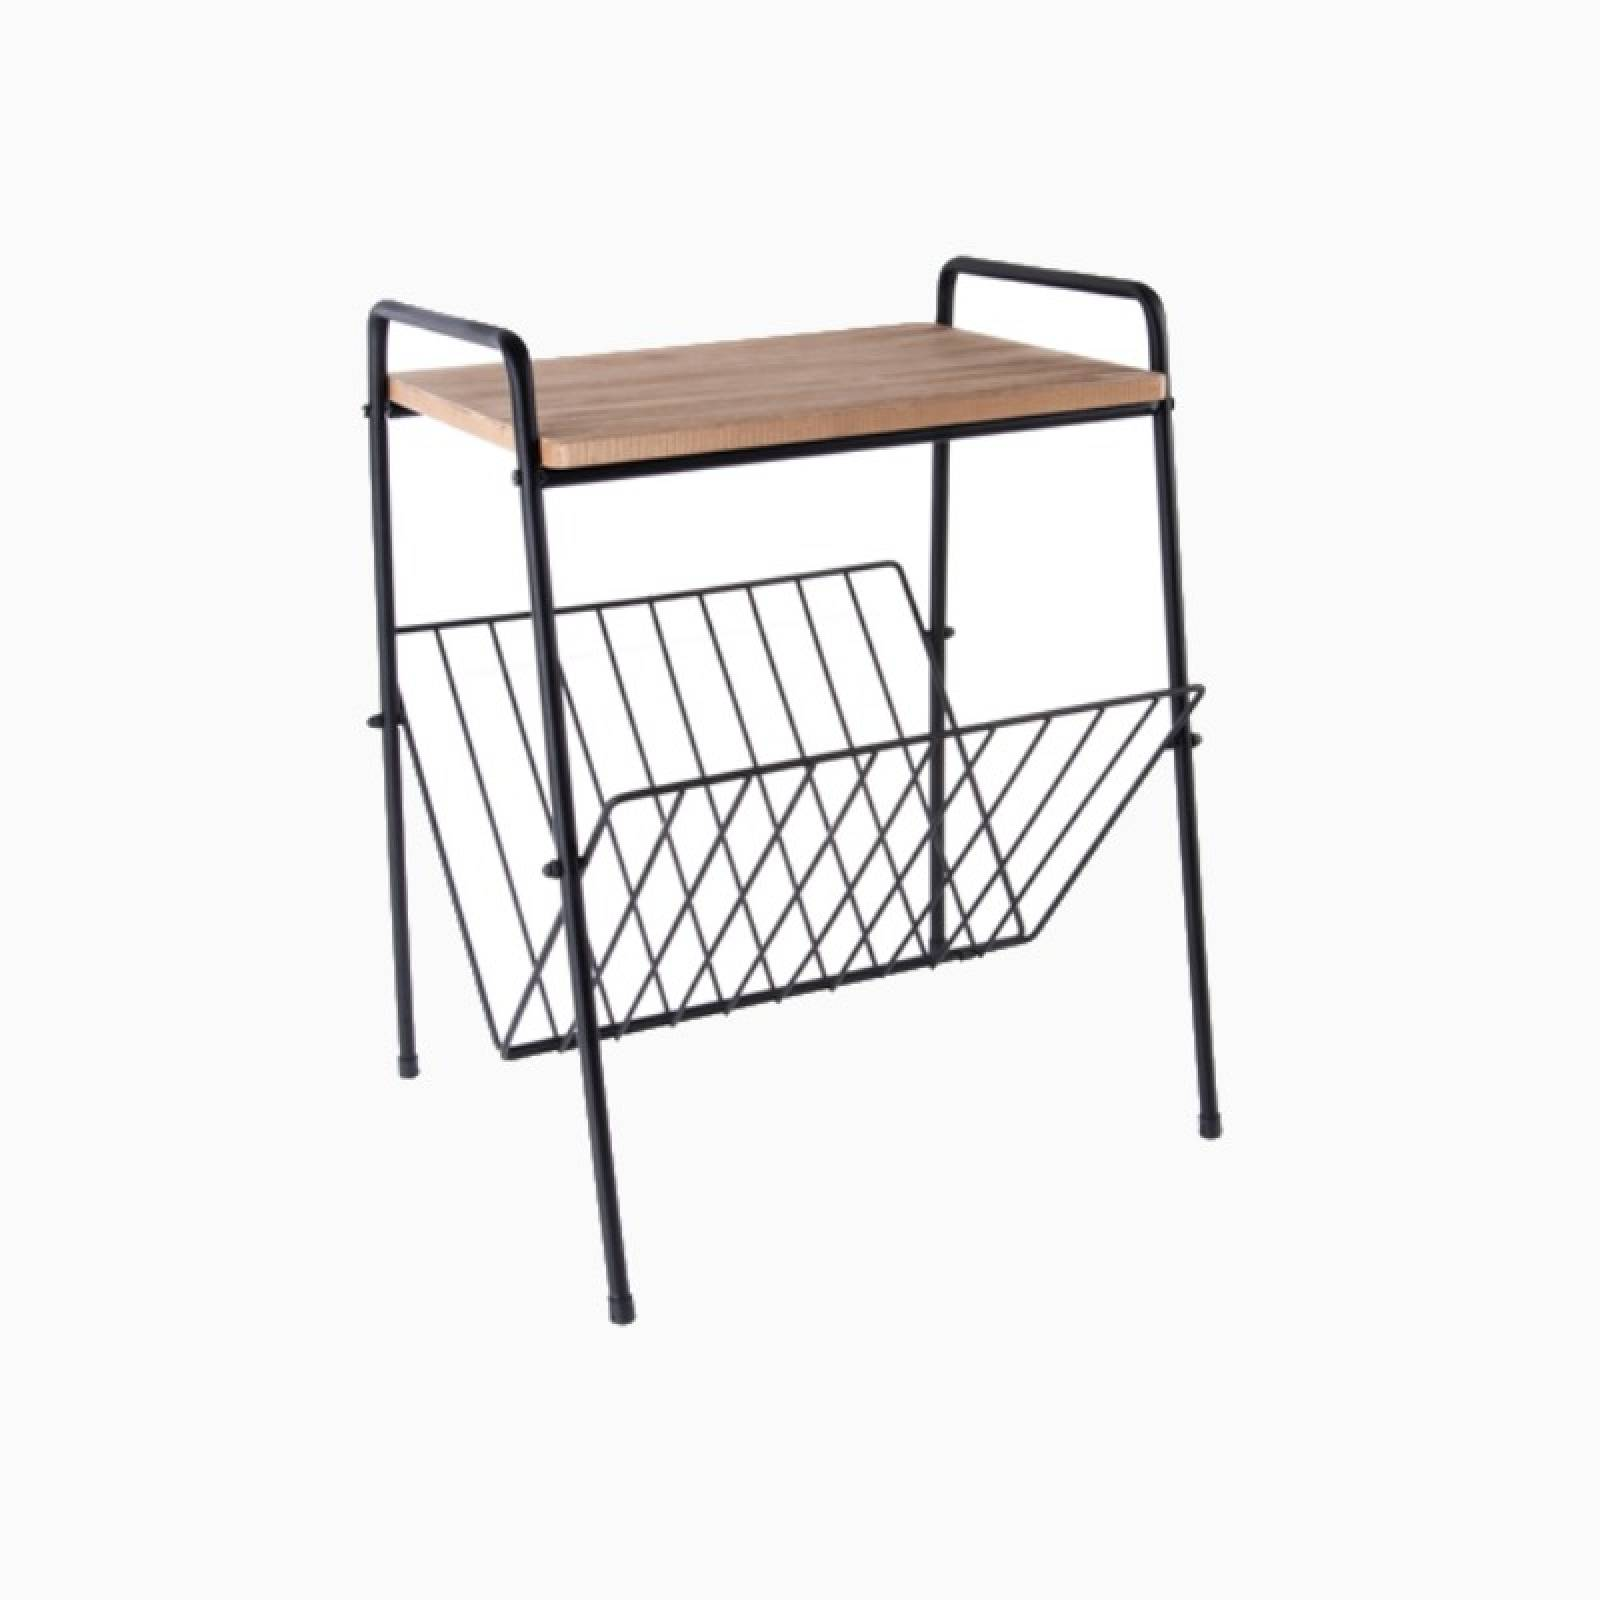 Small Side Table With Shelf And Rack PT thumbnails